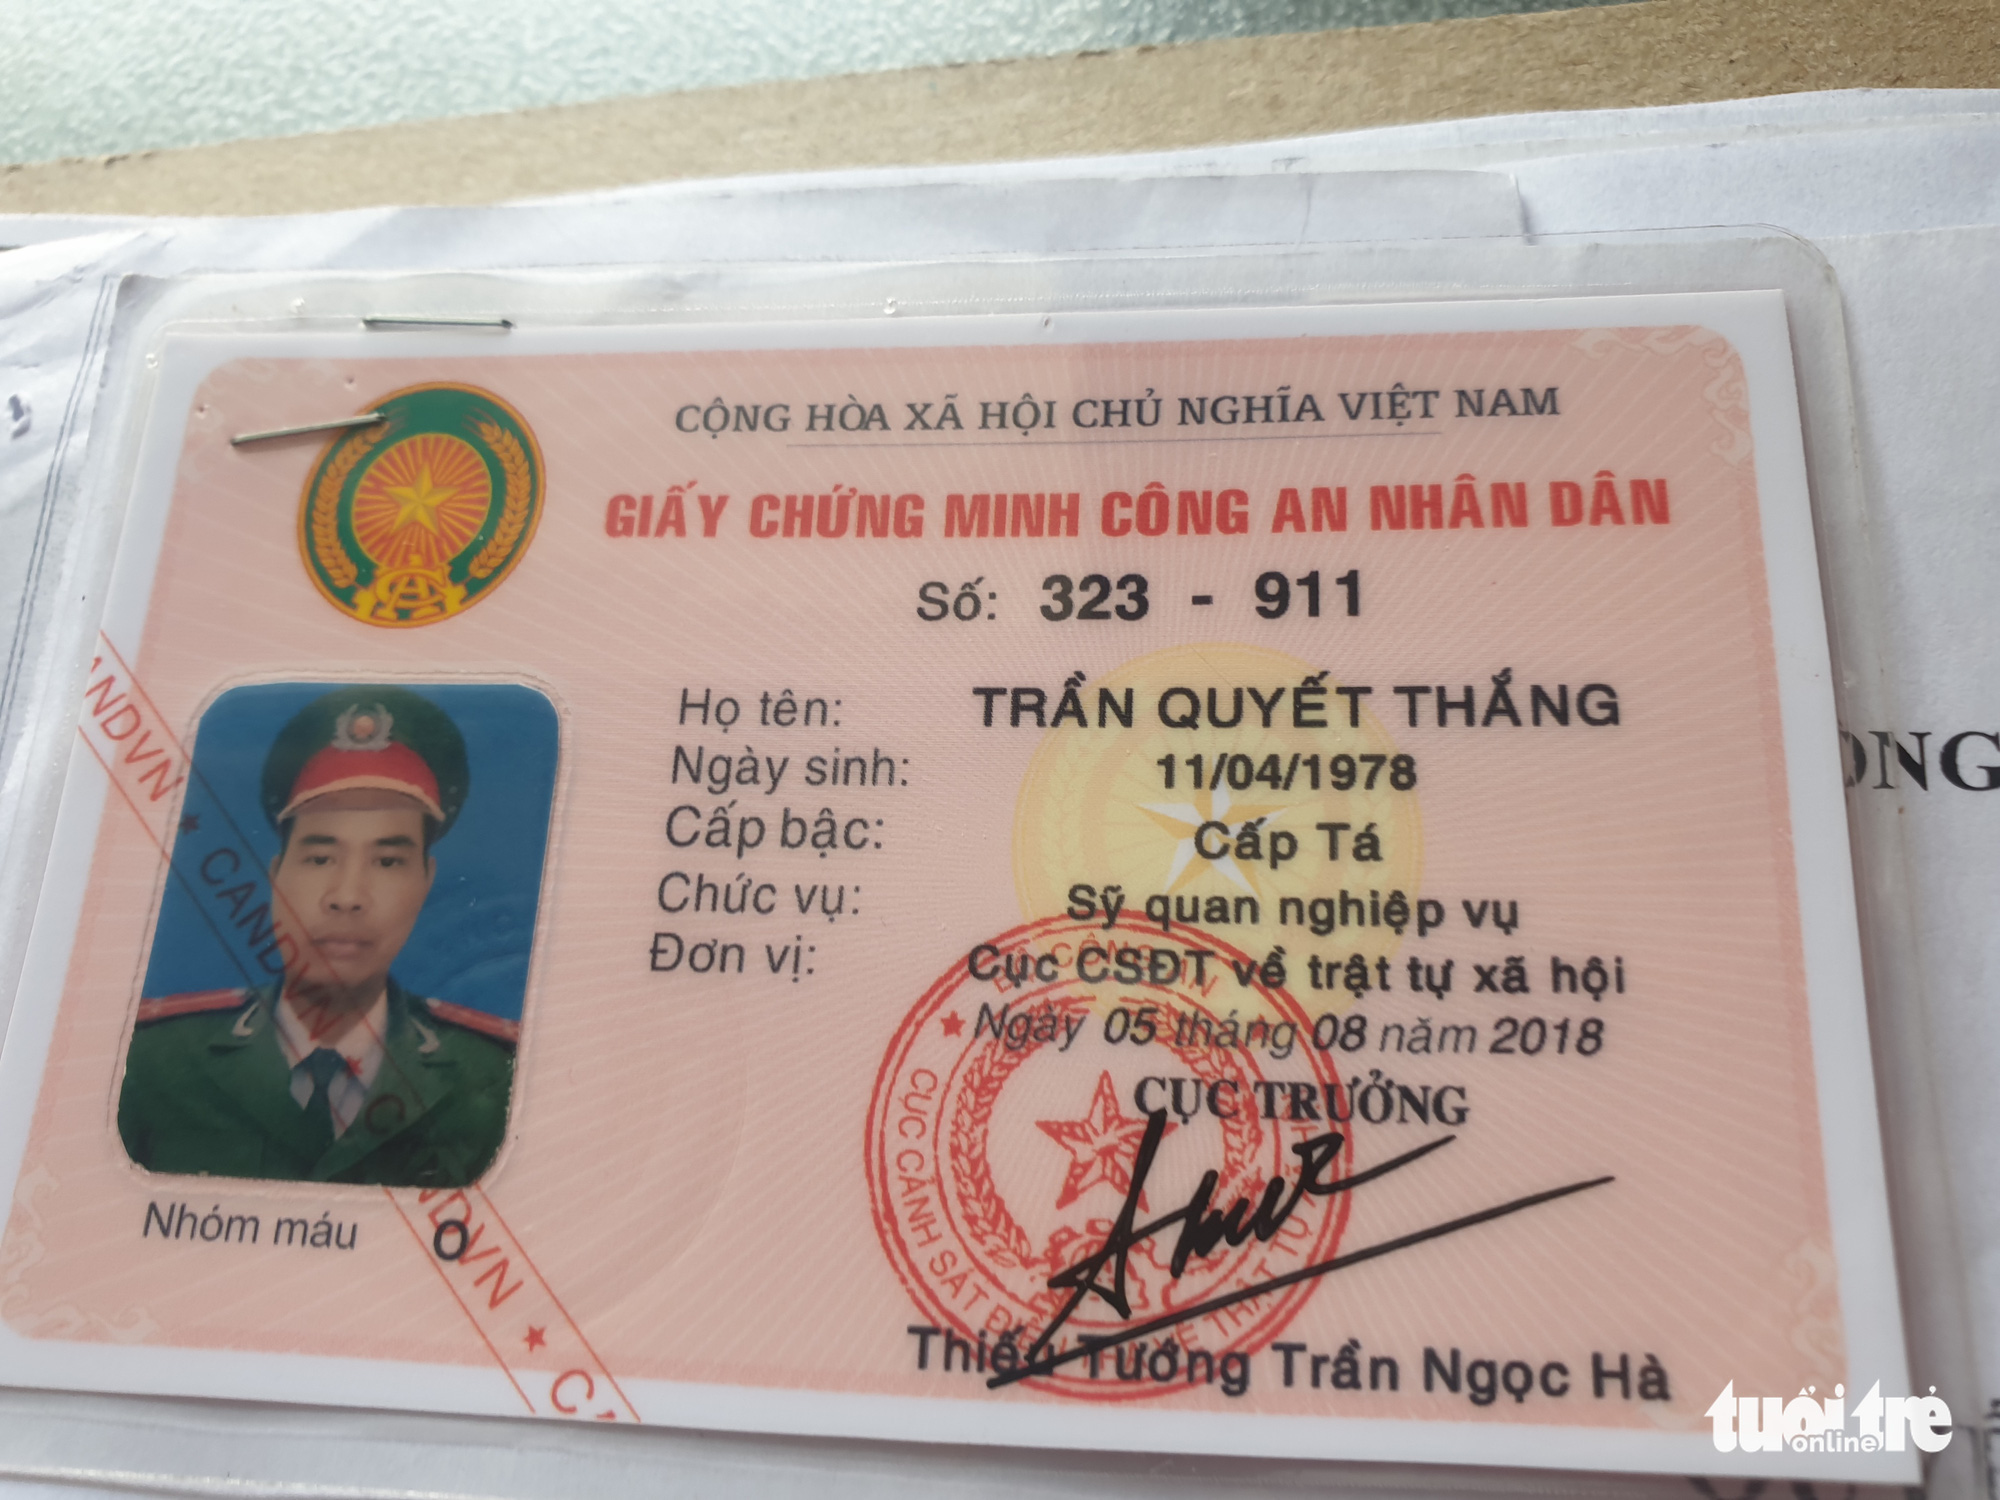 Thai and Son's fake police card is confiscated by police in District 11, Ho Chi Minh City.